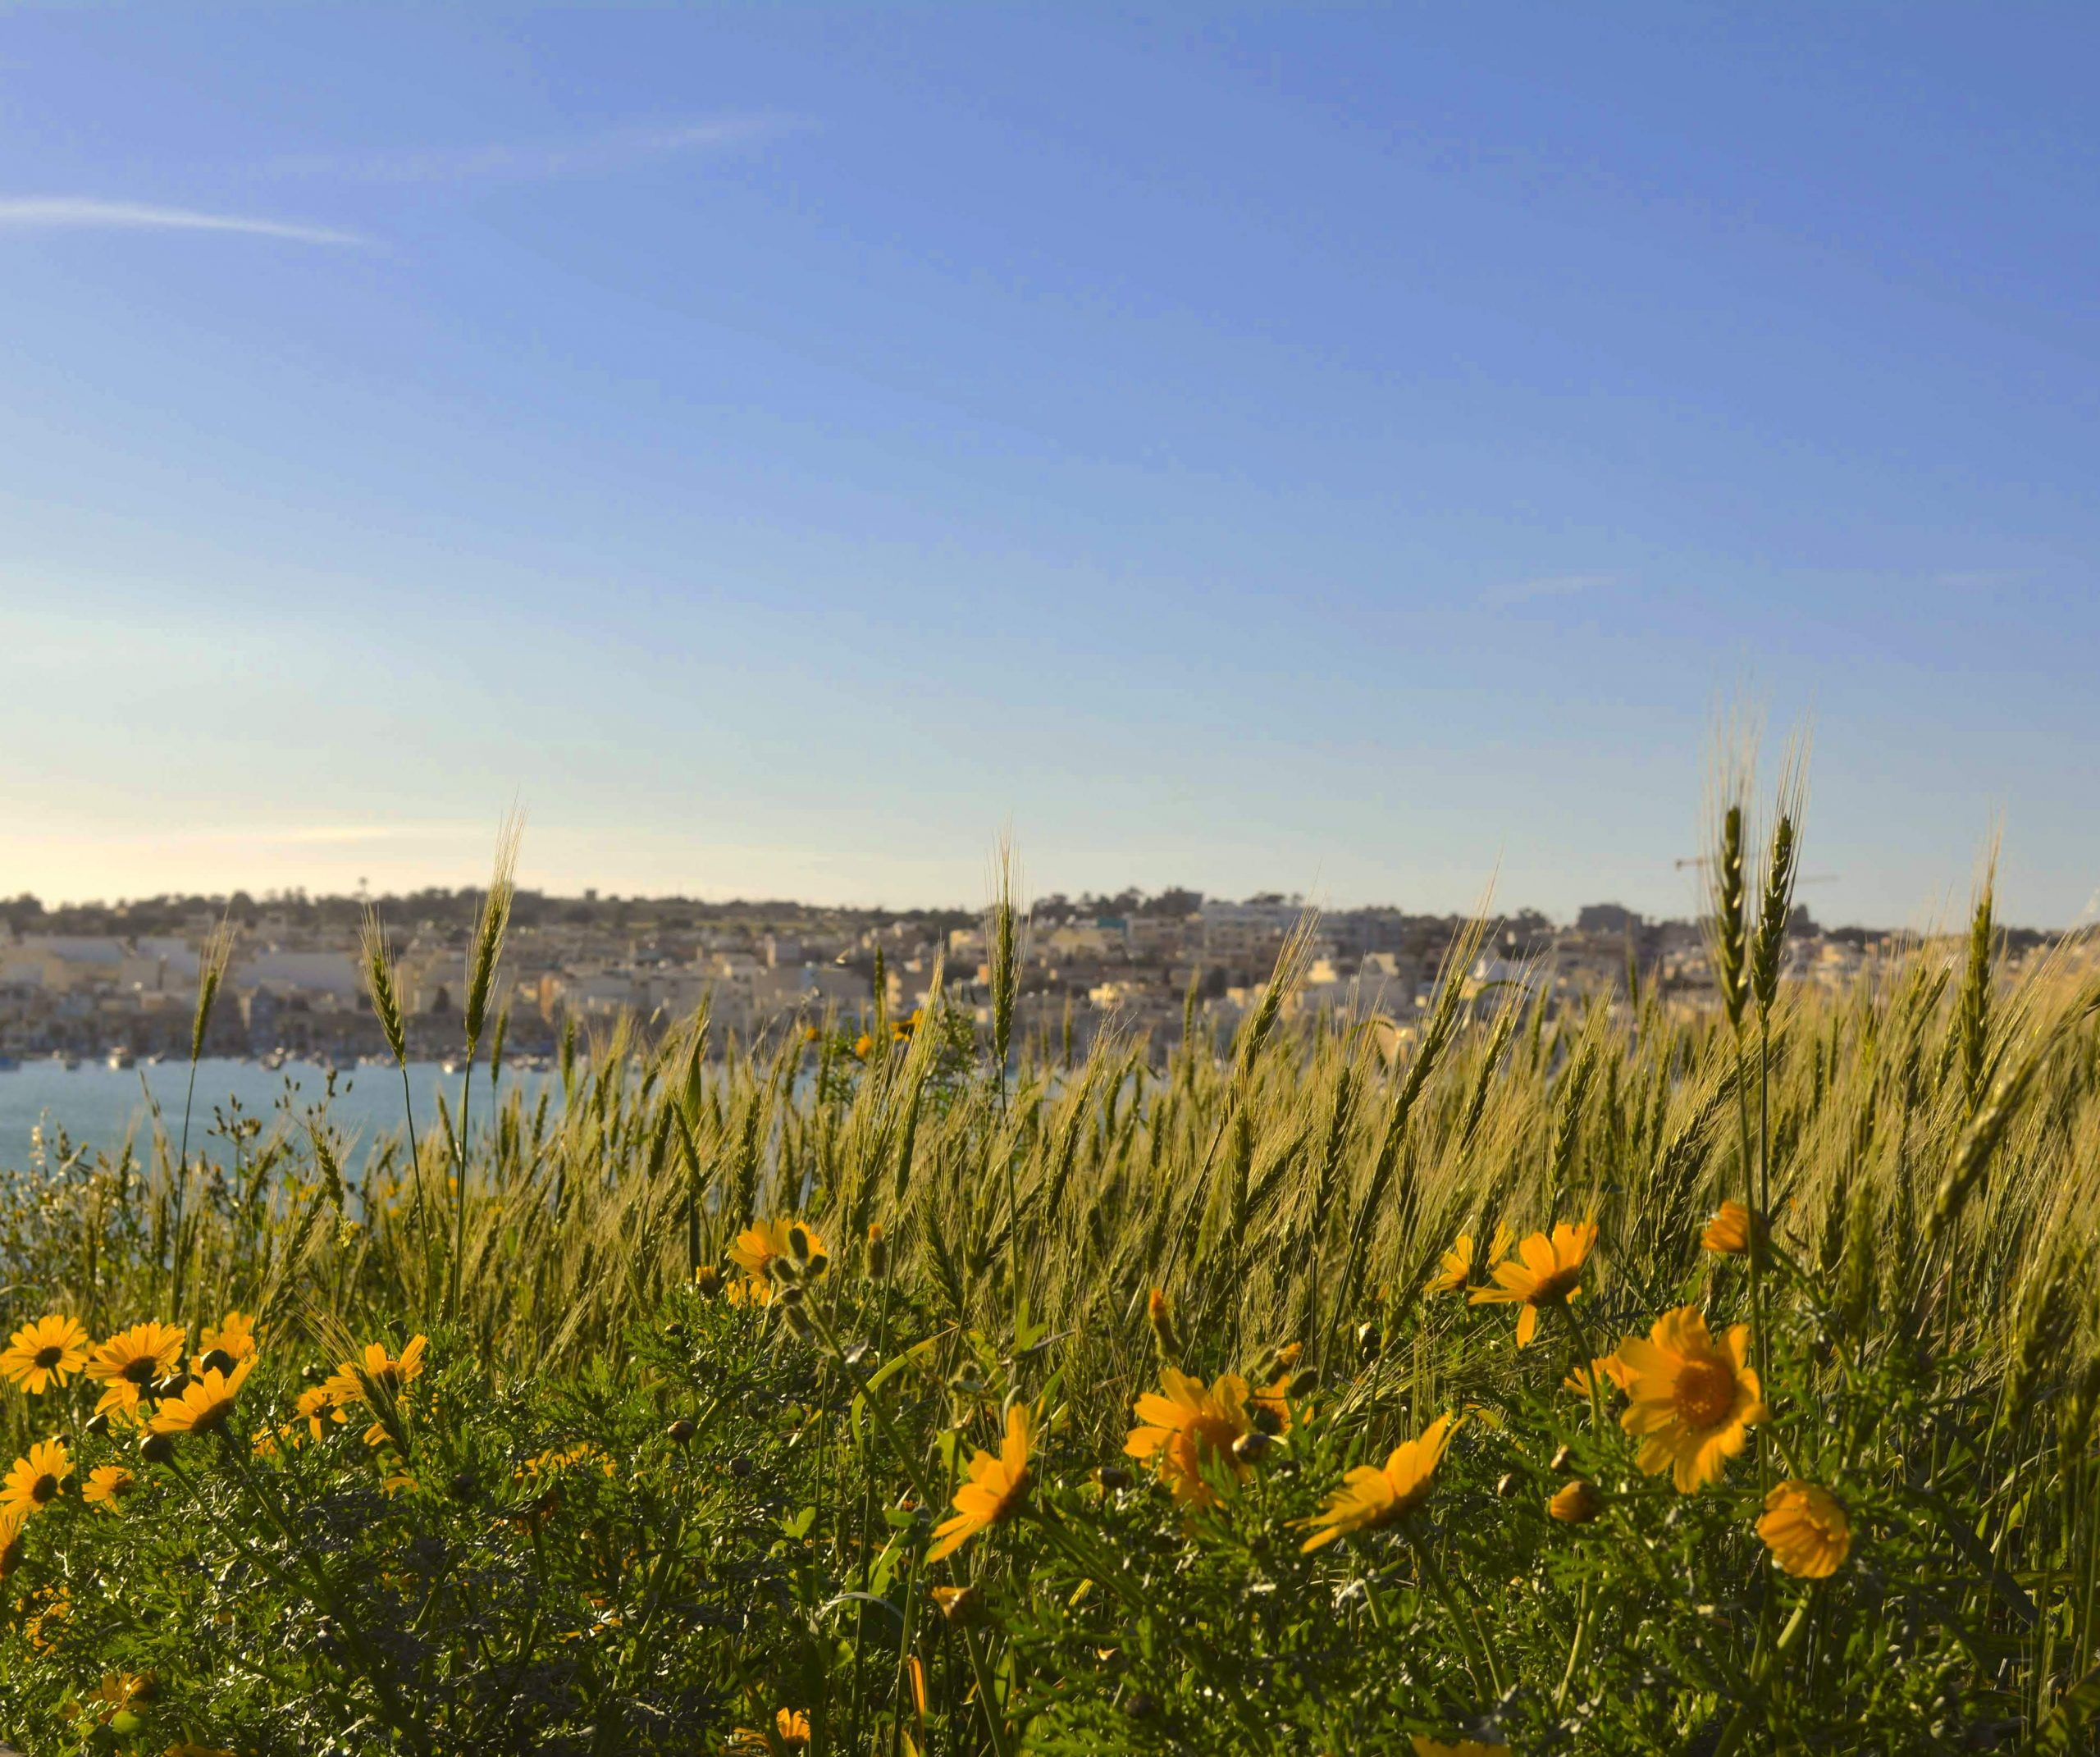 Yellow flowers with a seaside town in the distance